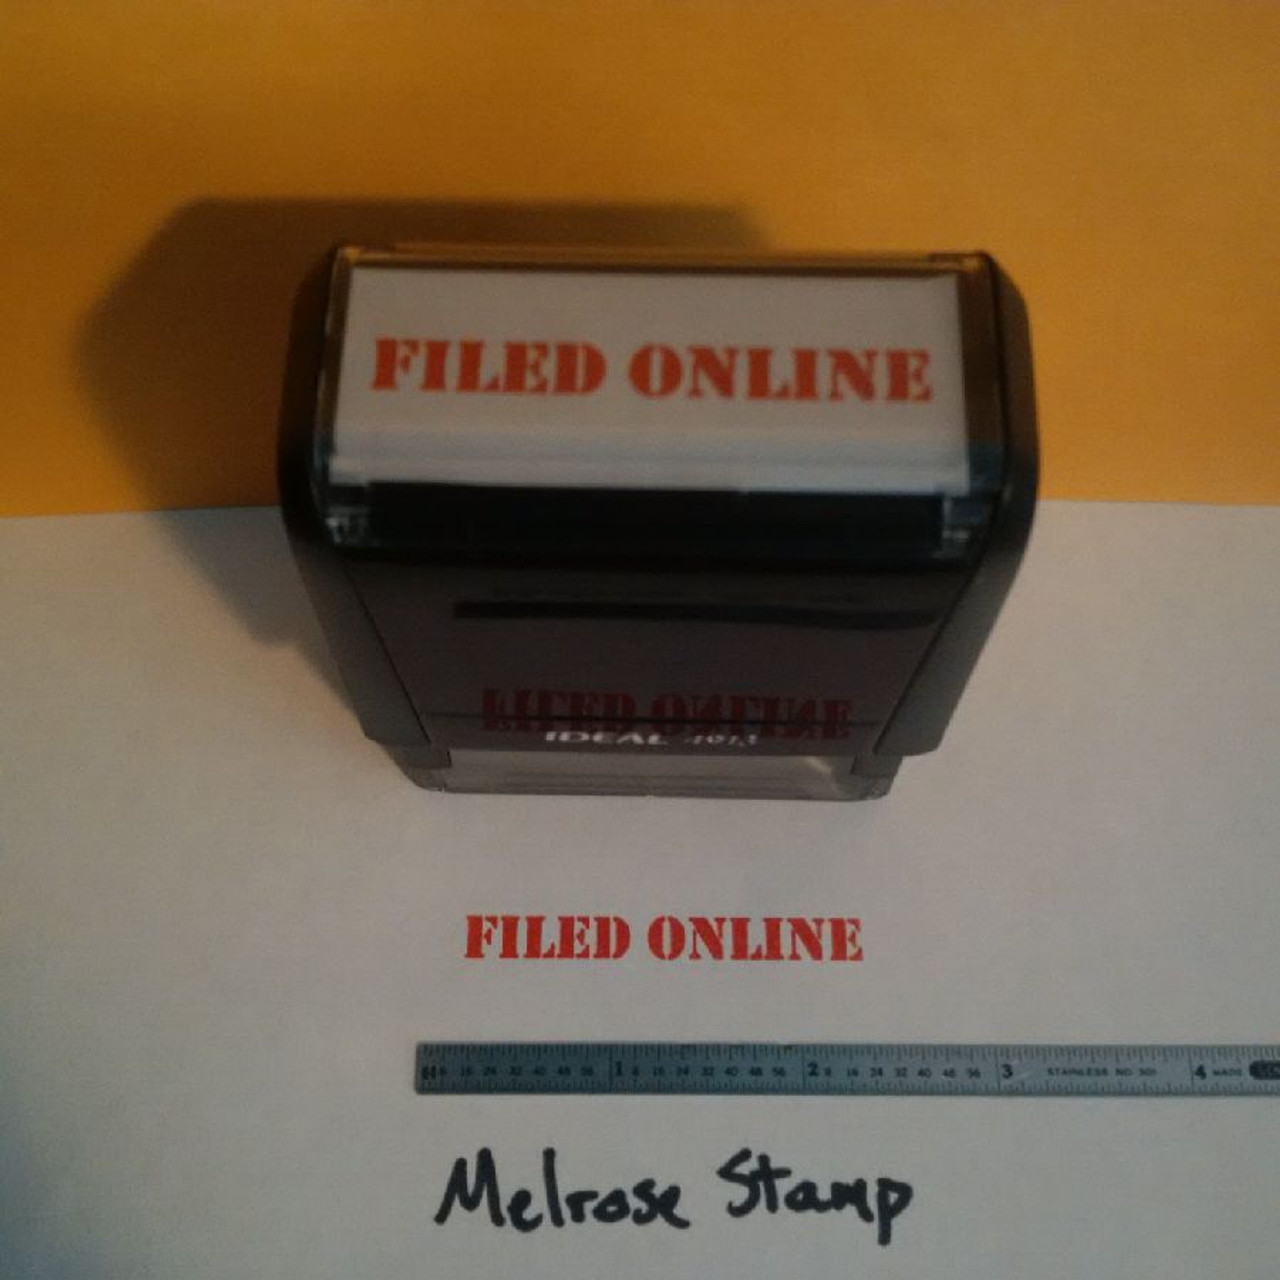 FILED ONLINE Rubber Stamp for office use self-inking